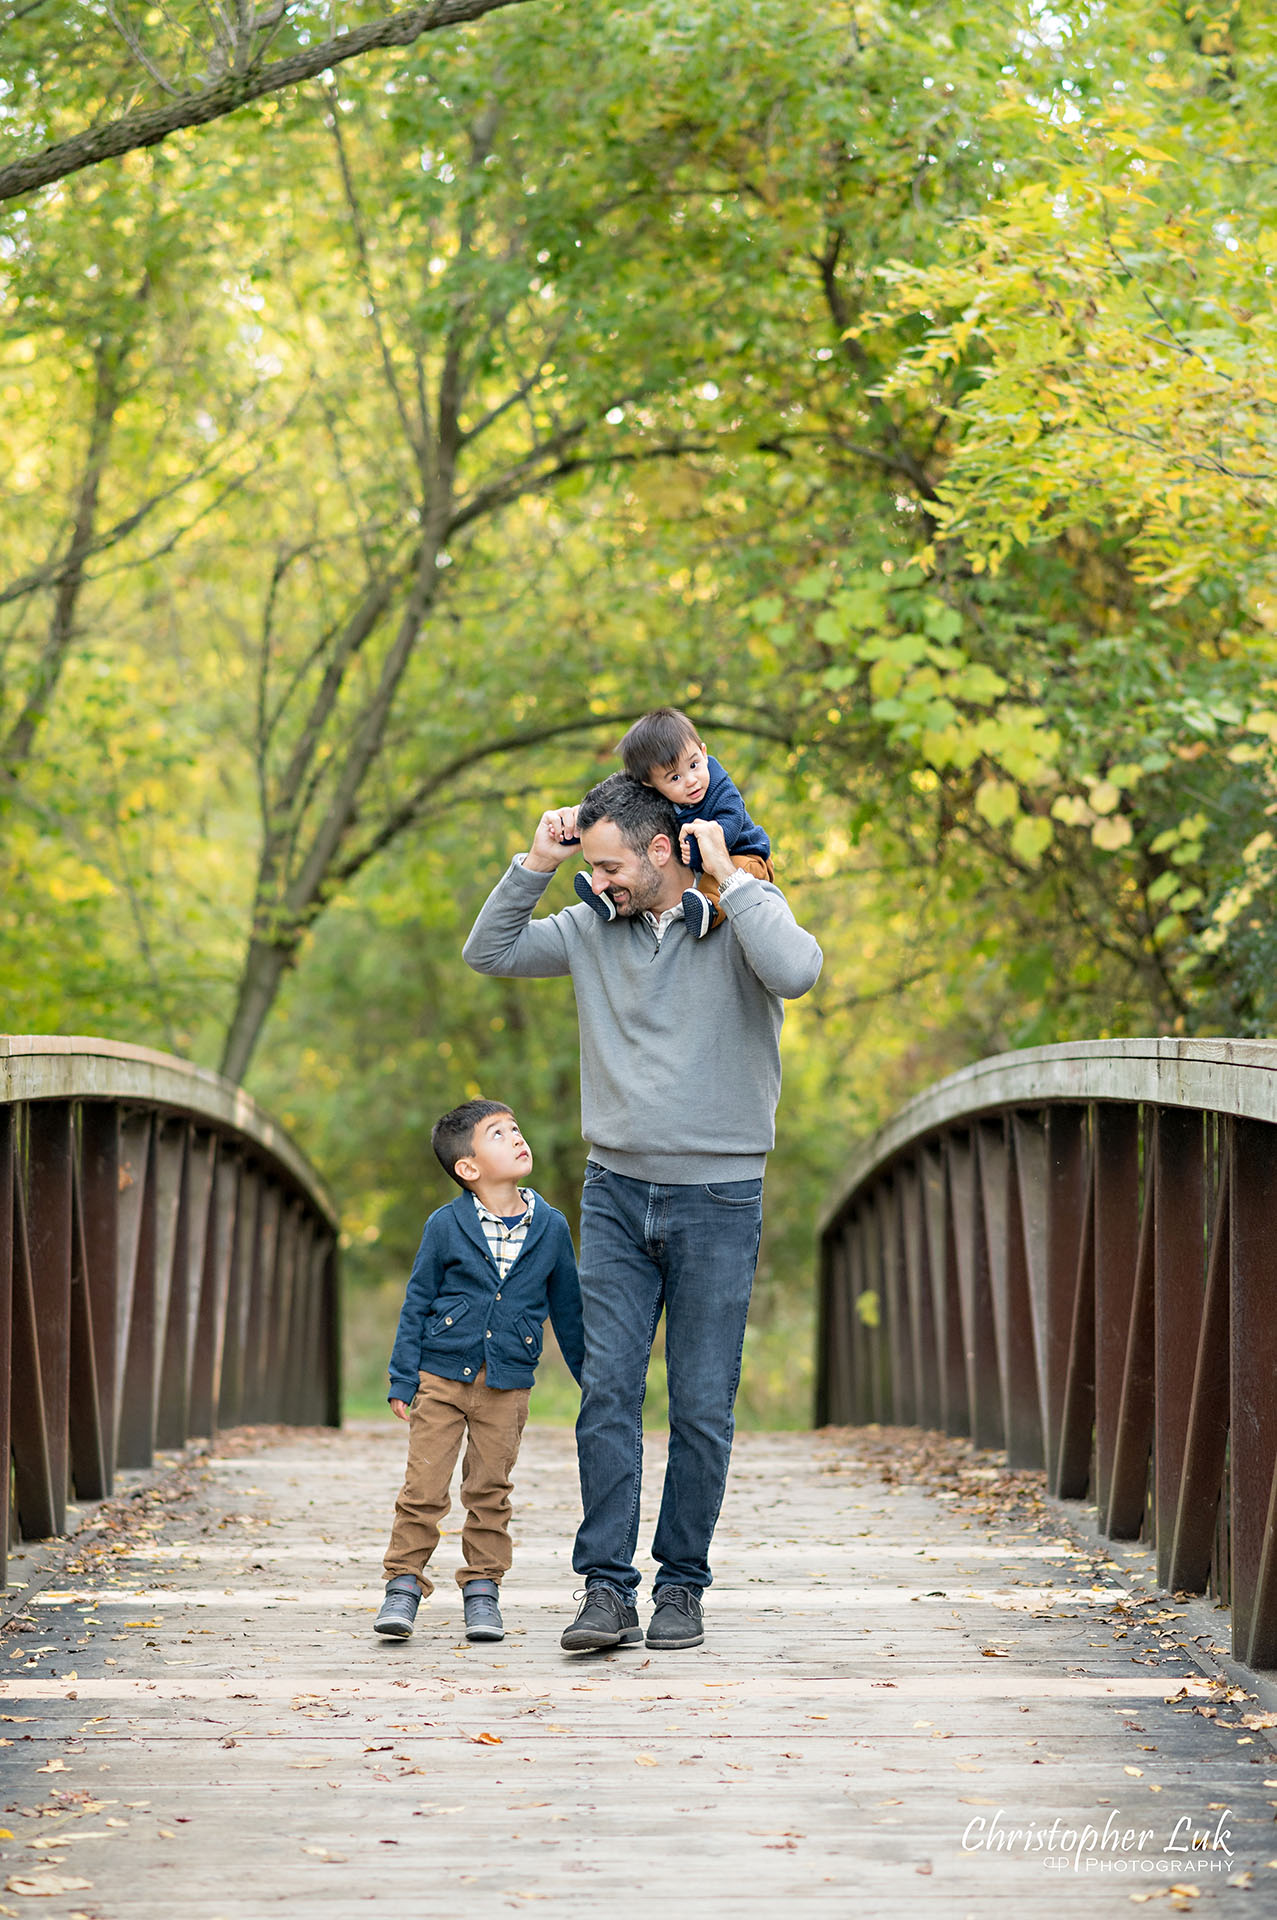 Christopher Luk Family Photographer Toronto Markham Unionville Autumn Fall Leaves Natural Candid Photojournalistic Sons Brothers Baby Boys Bridge Father Dad Fatherhood Holding Hands Walking Carrying Shoulder